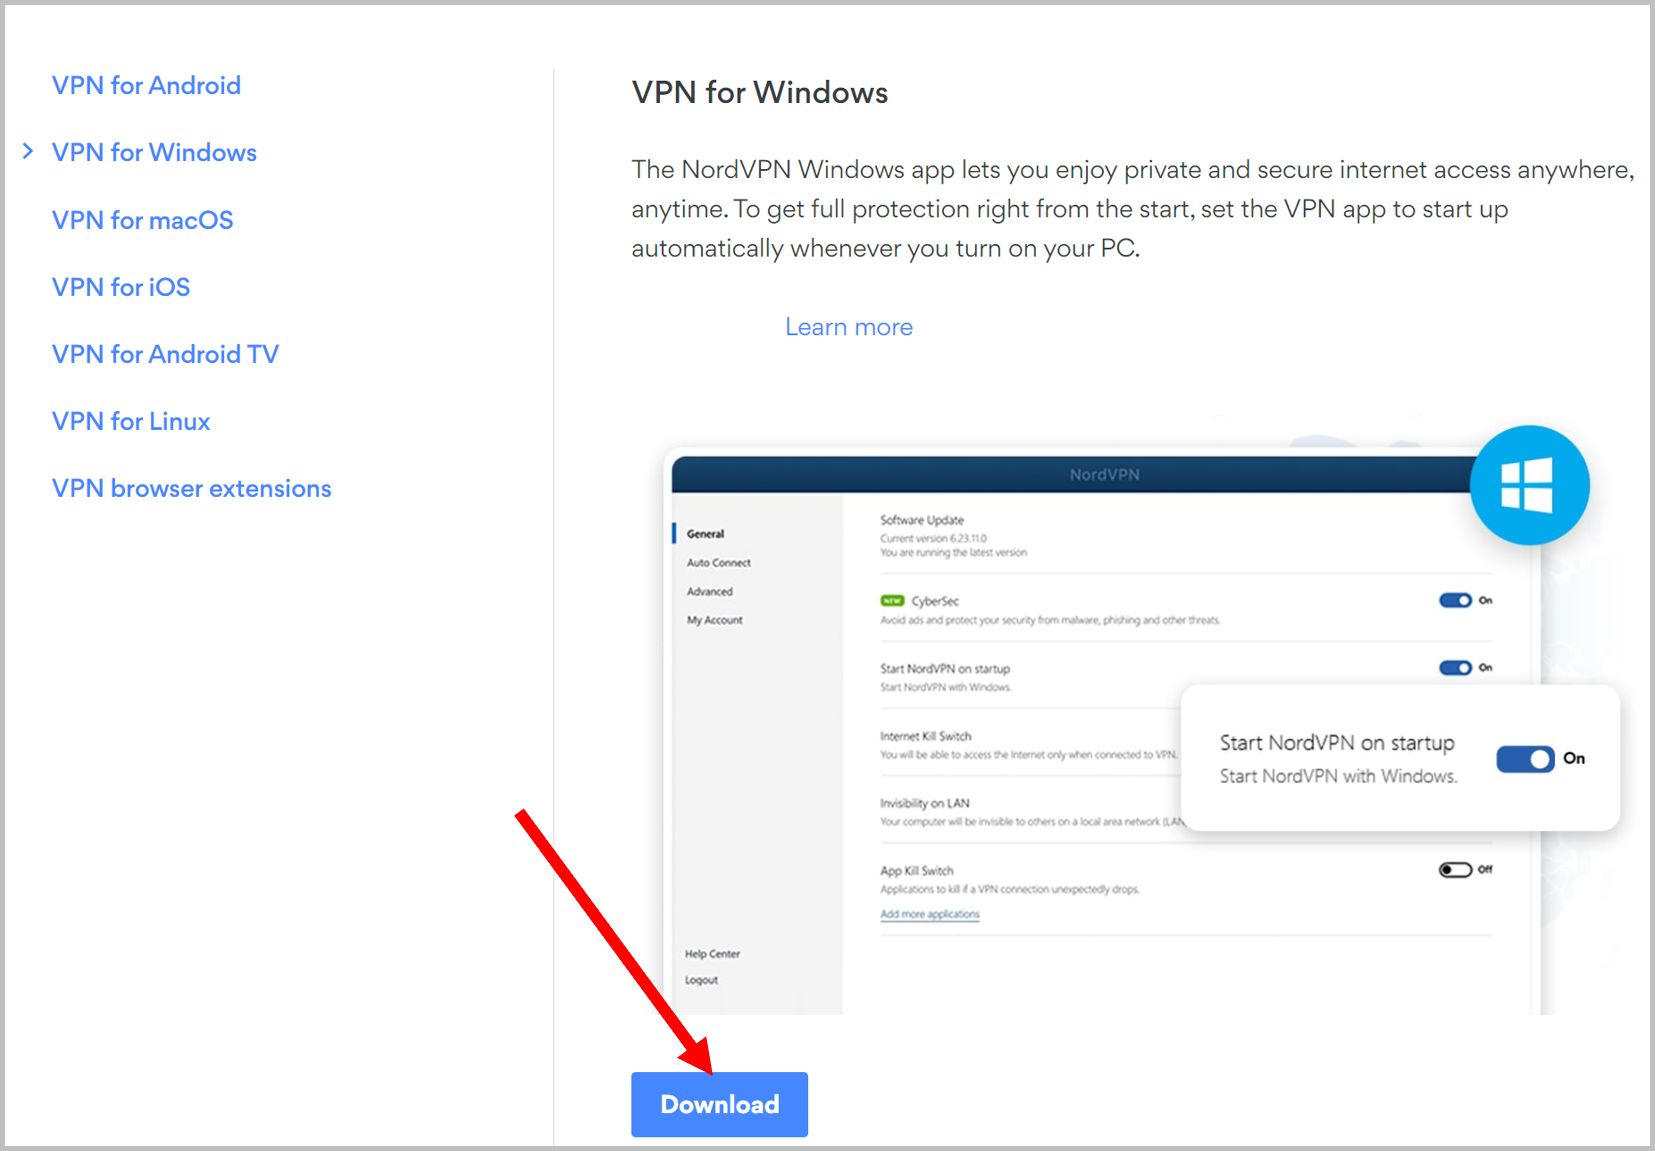 Download process for NordVPN